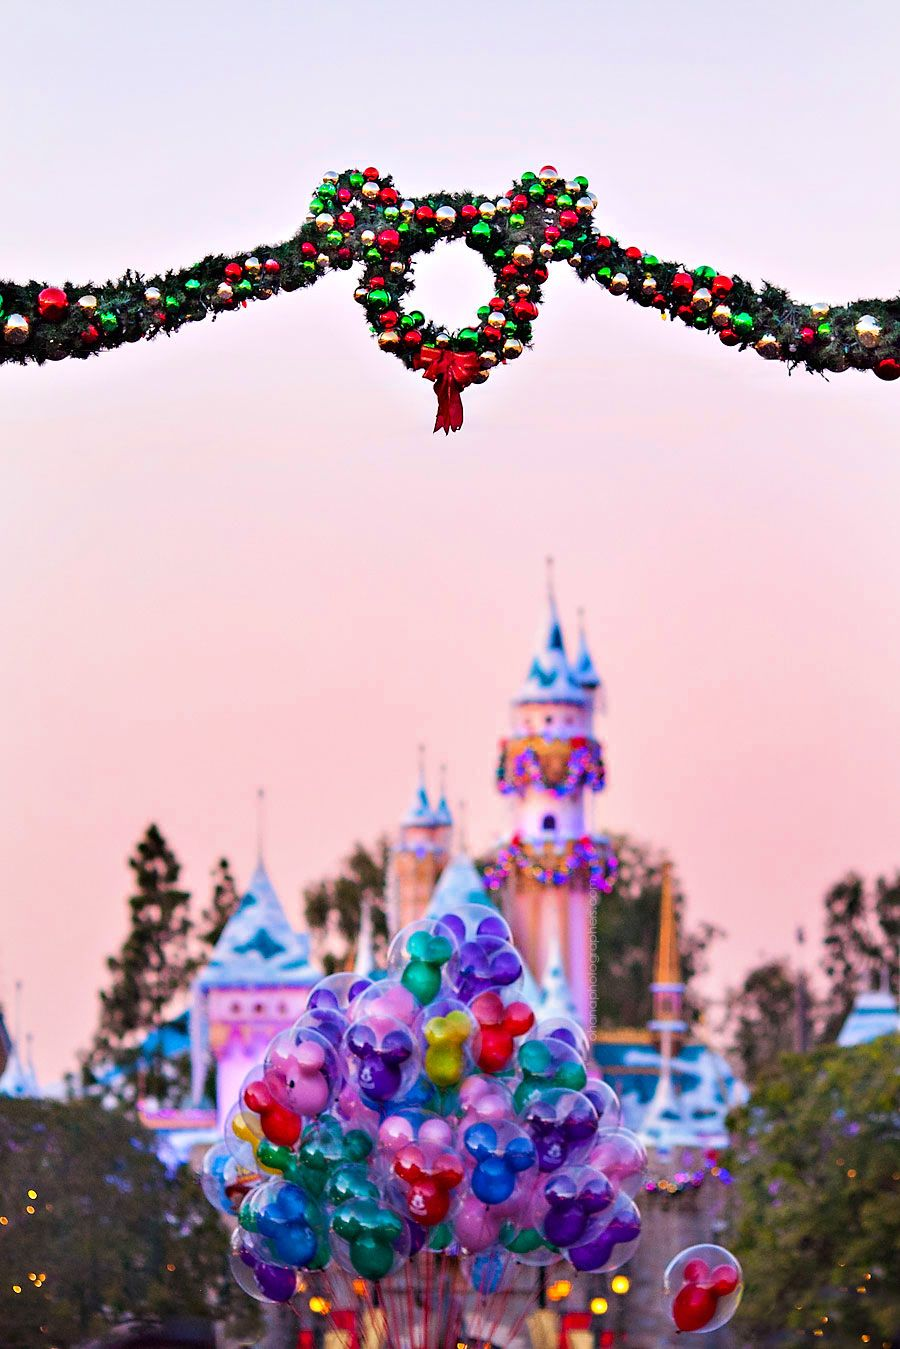 Disneyland Sleeping Beauty Castle at Christmas // Mickey Mouse Balloons // view from Main Street U.S.A